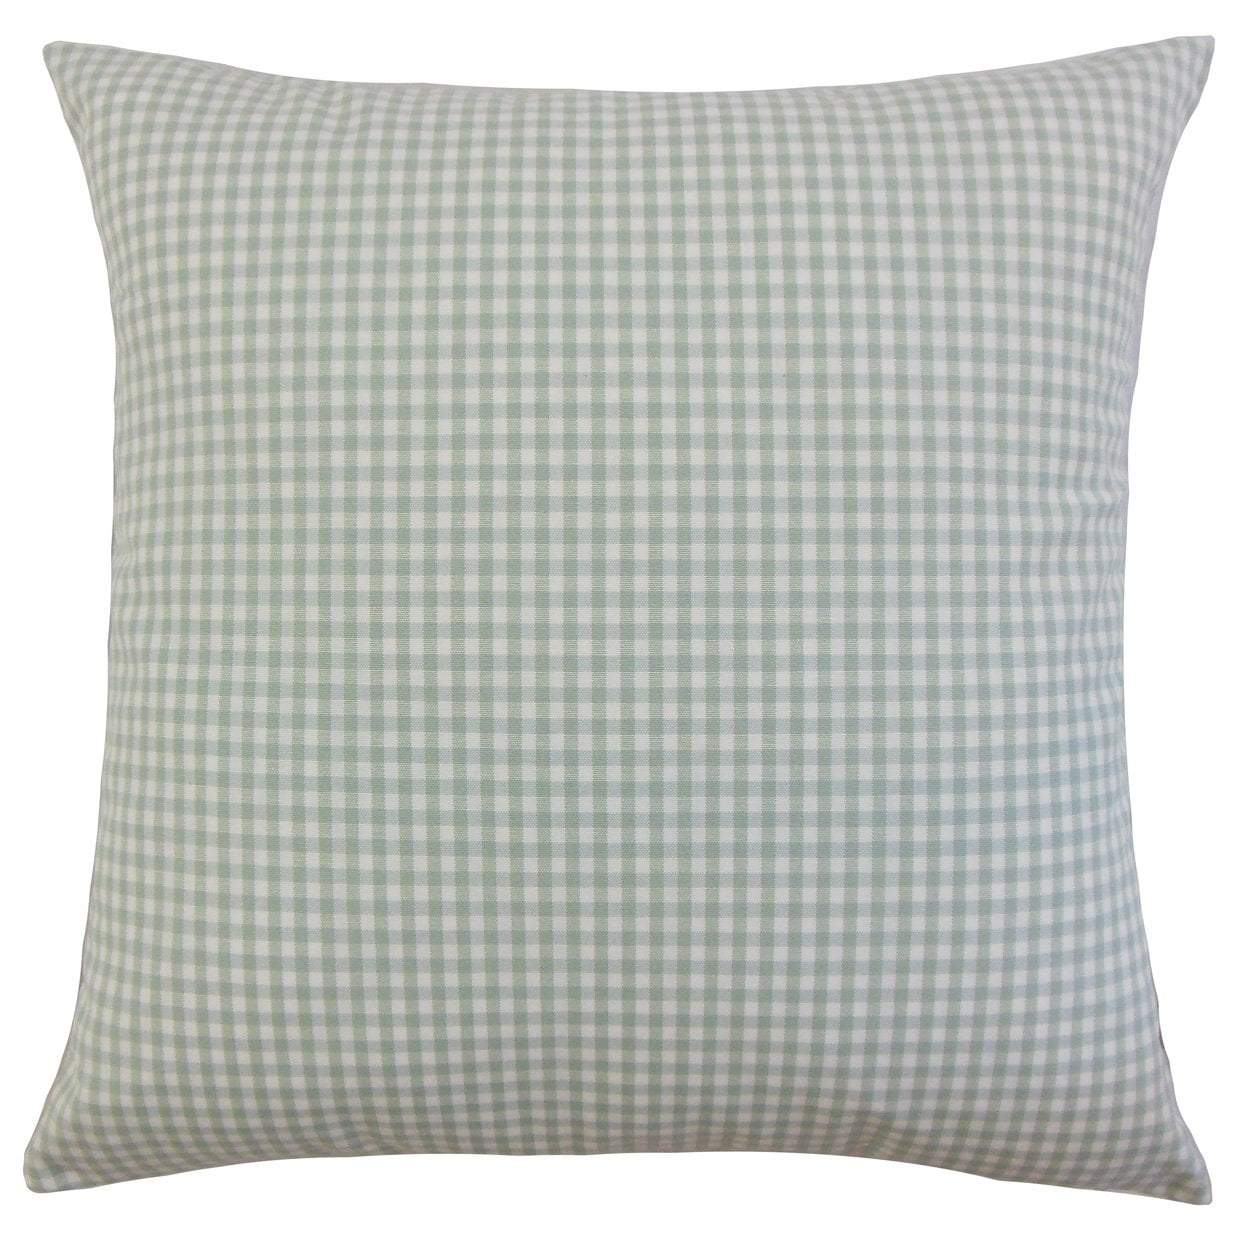 Blue Cotton Plaid Contemporary Throw Pillow Cover